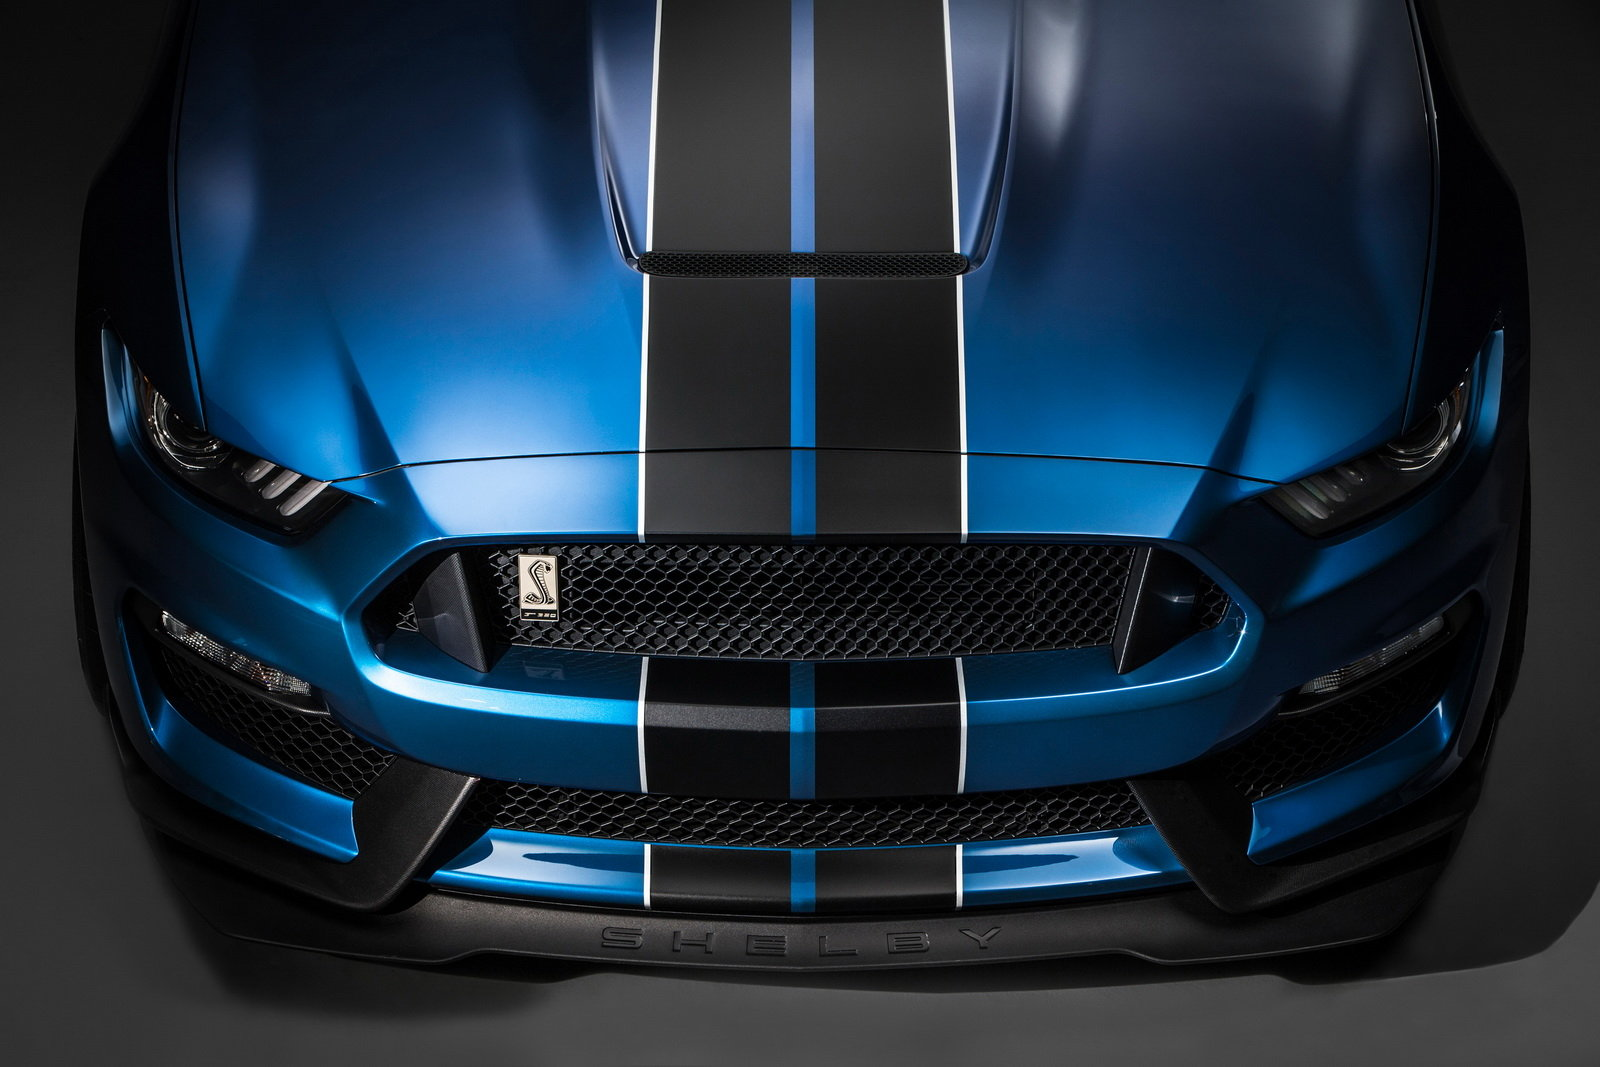 2016 Ford Mustang Shelby GT350R Front Grill and Headlamp